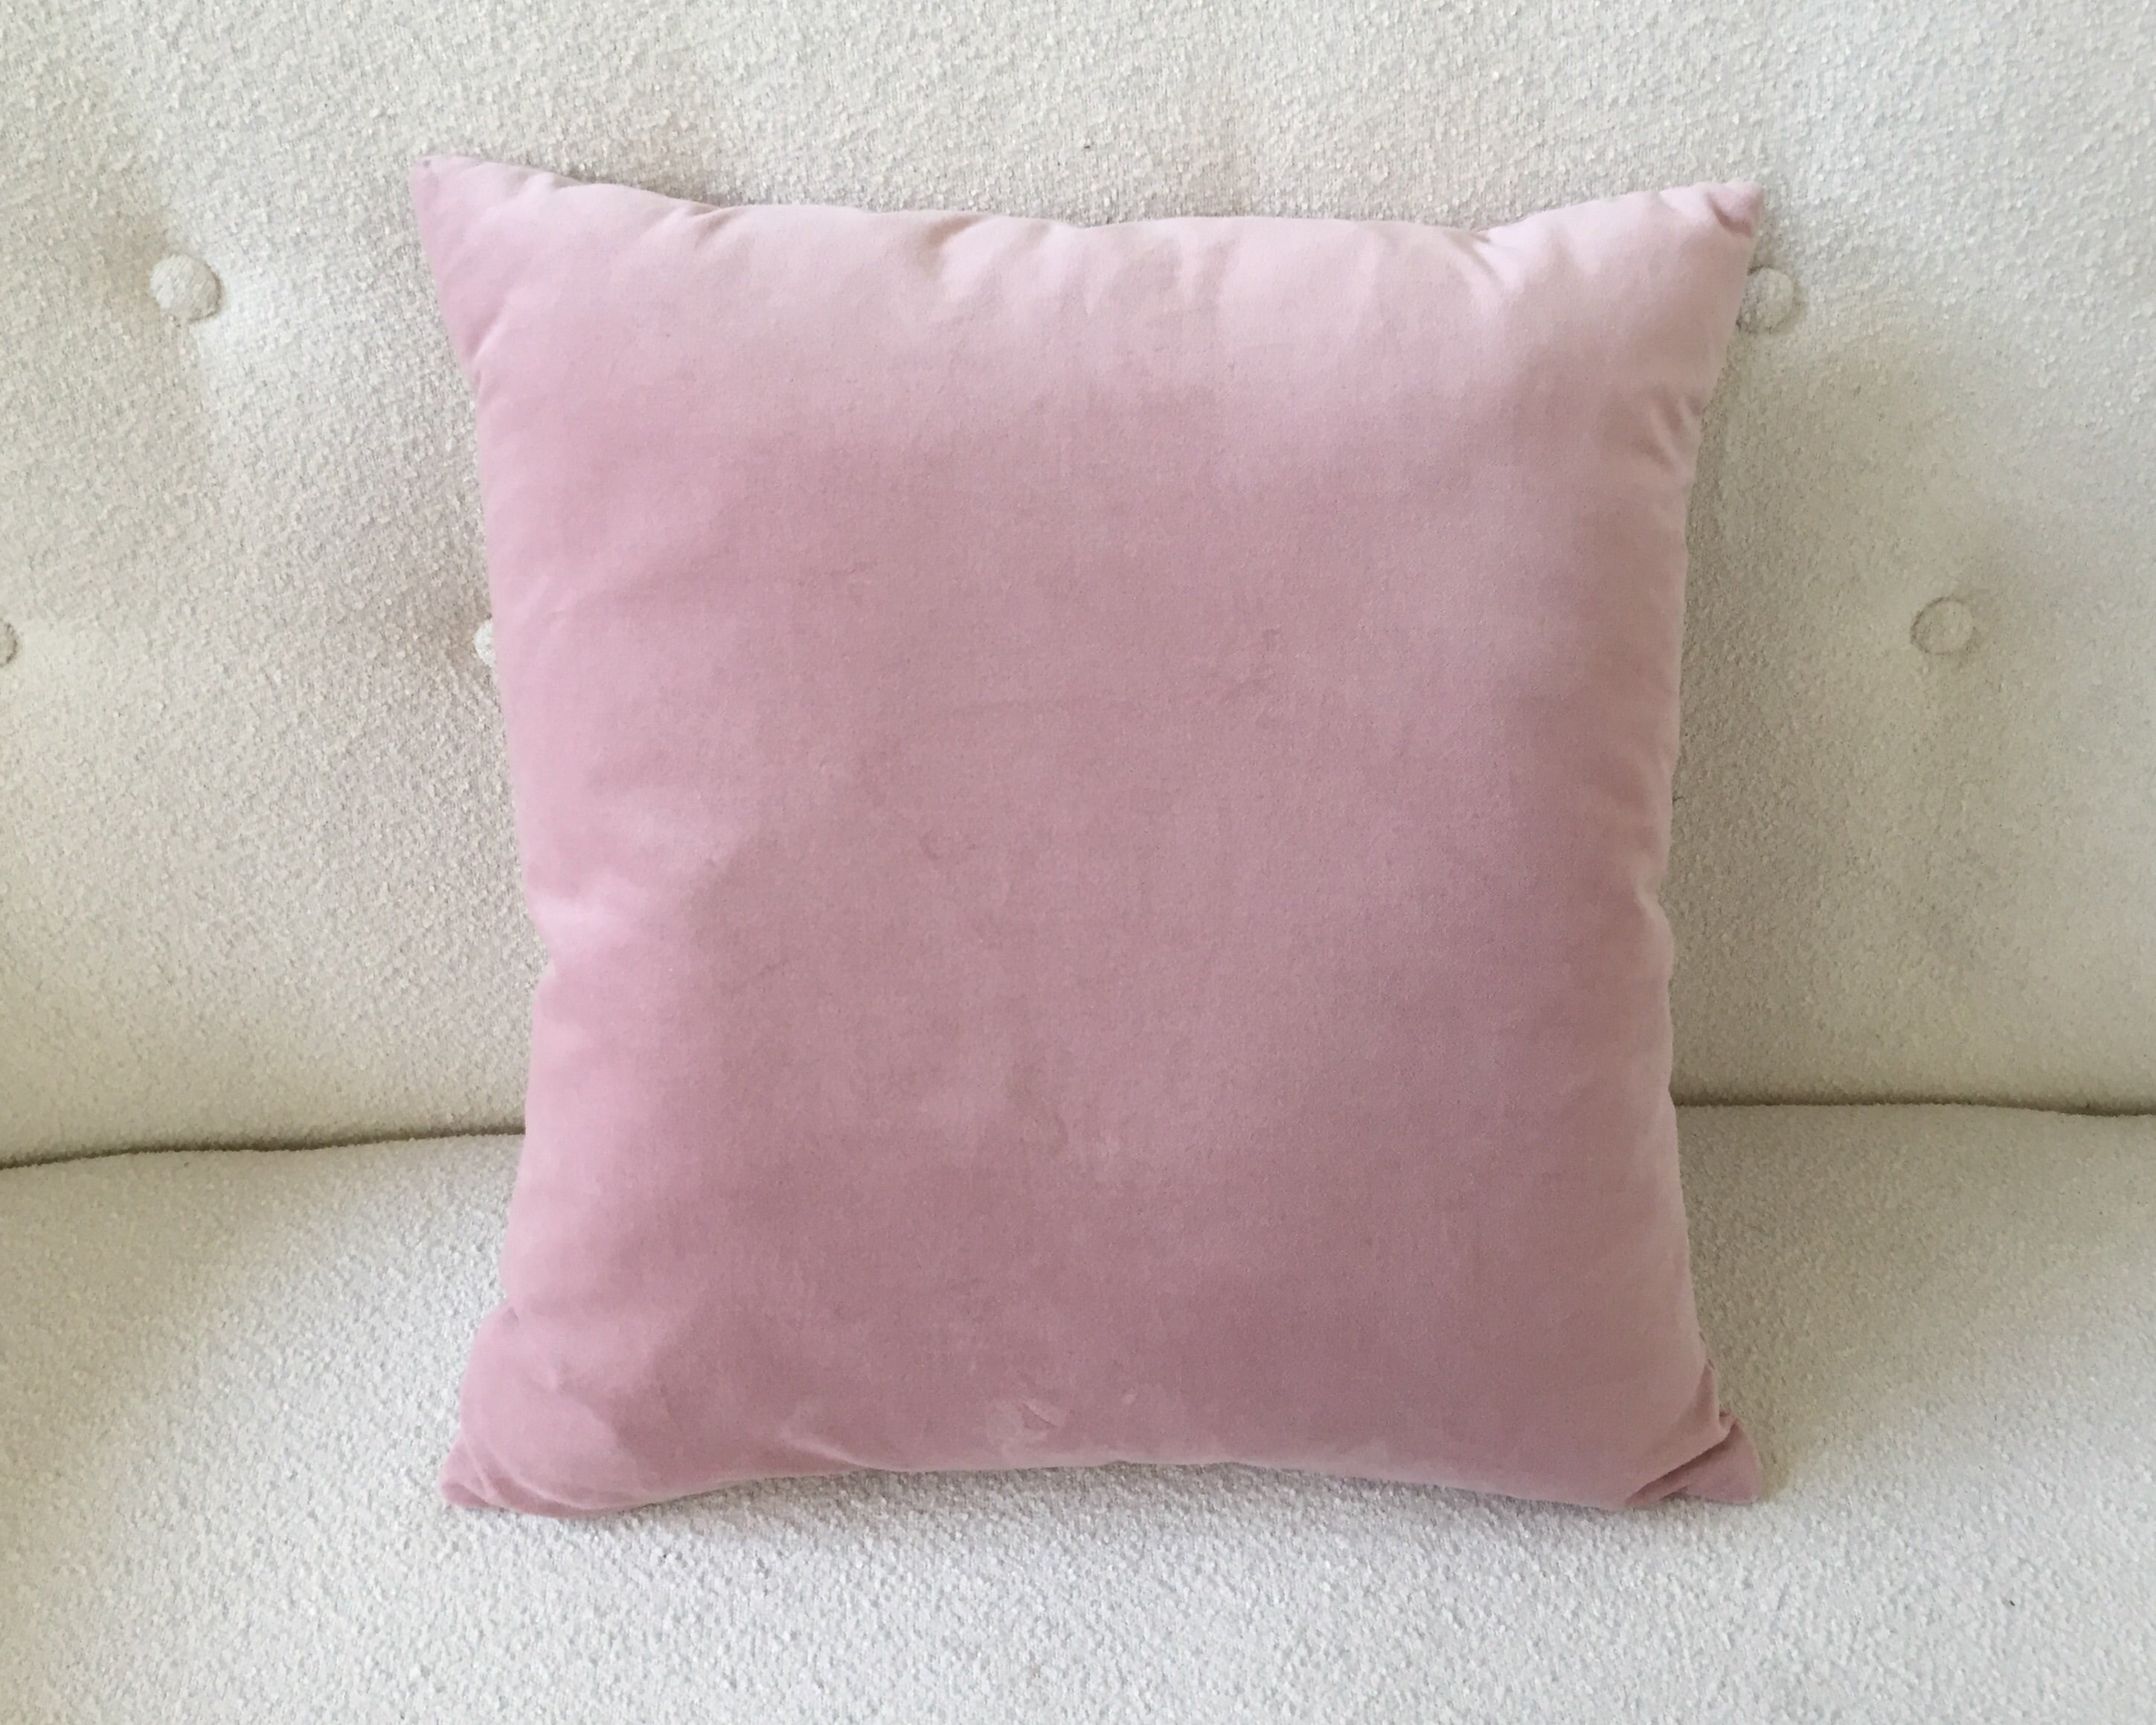 for pillow pink ideas couch your luxury decorative purple pale sofa smooth bedroom throw turquoise big pillows decor